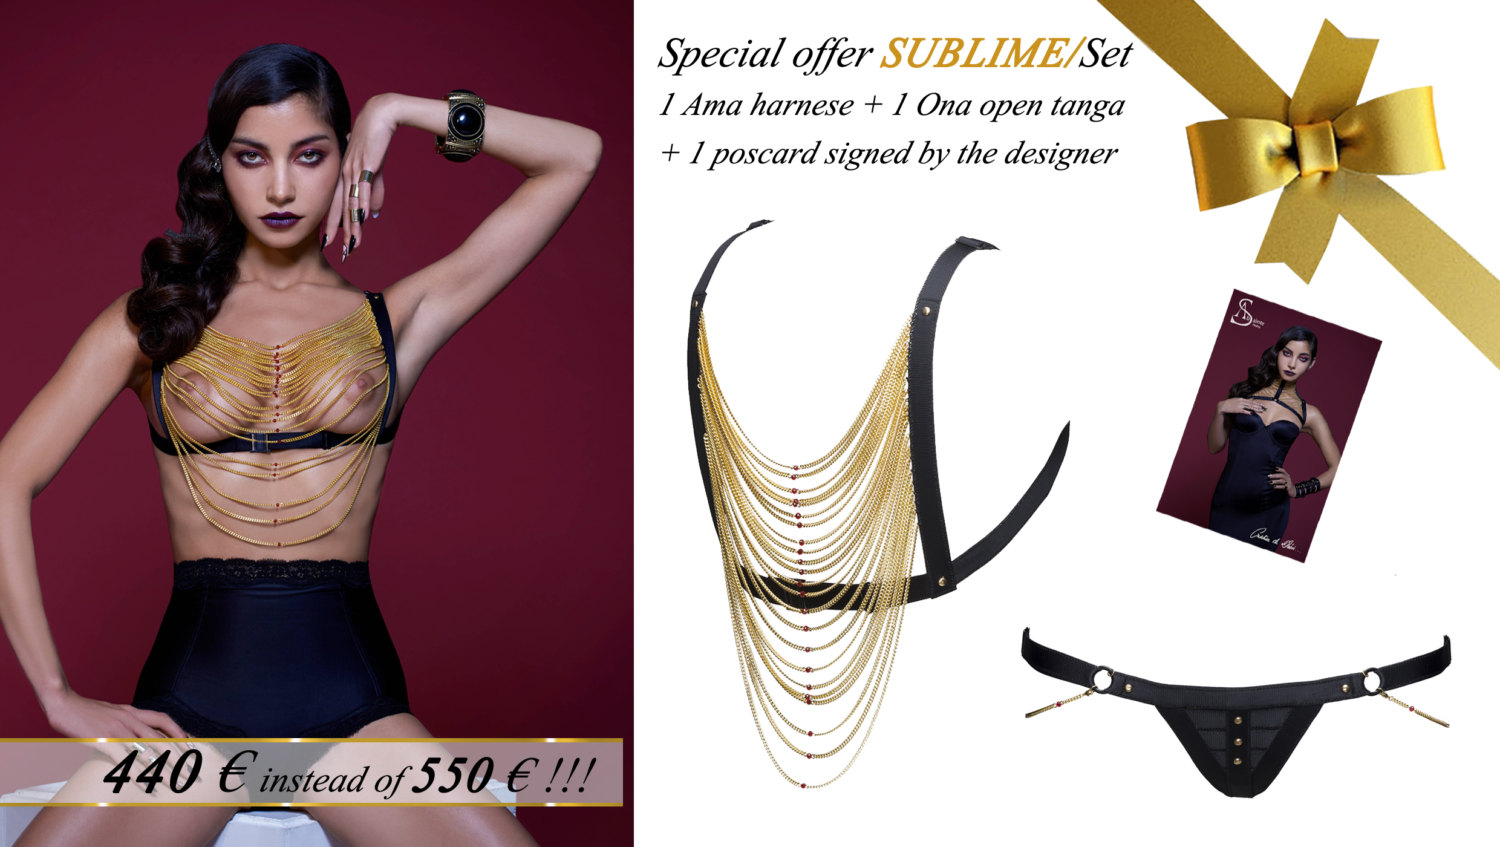 Sublime set €440 вместо €550